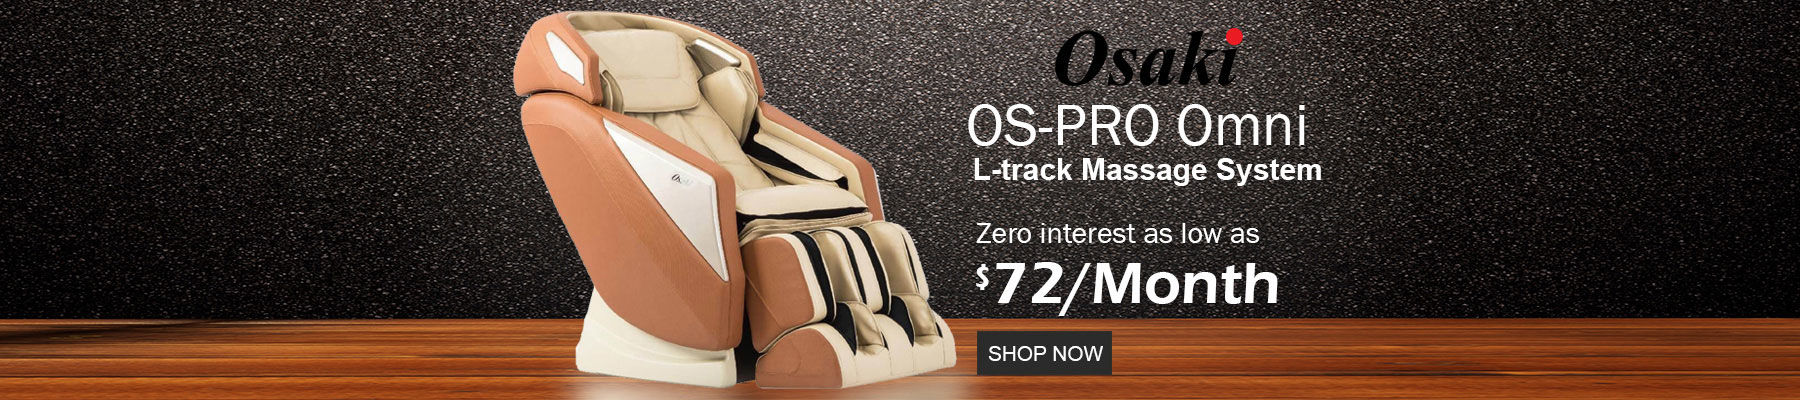 Osaki OS Pro Omni massage chair